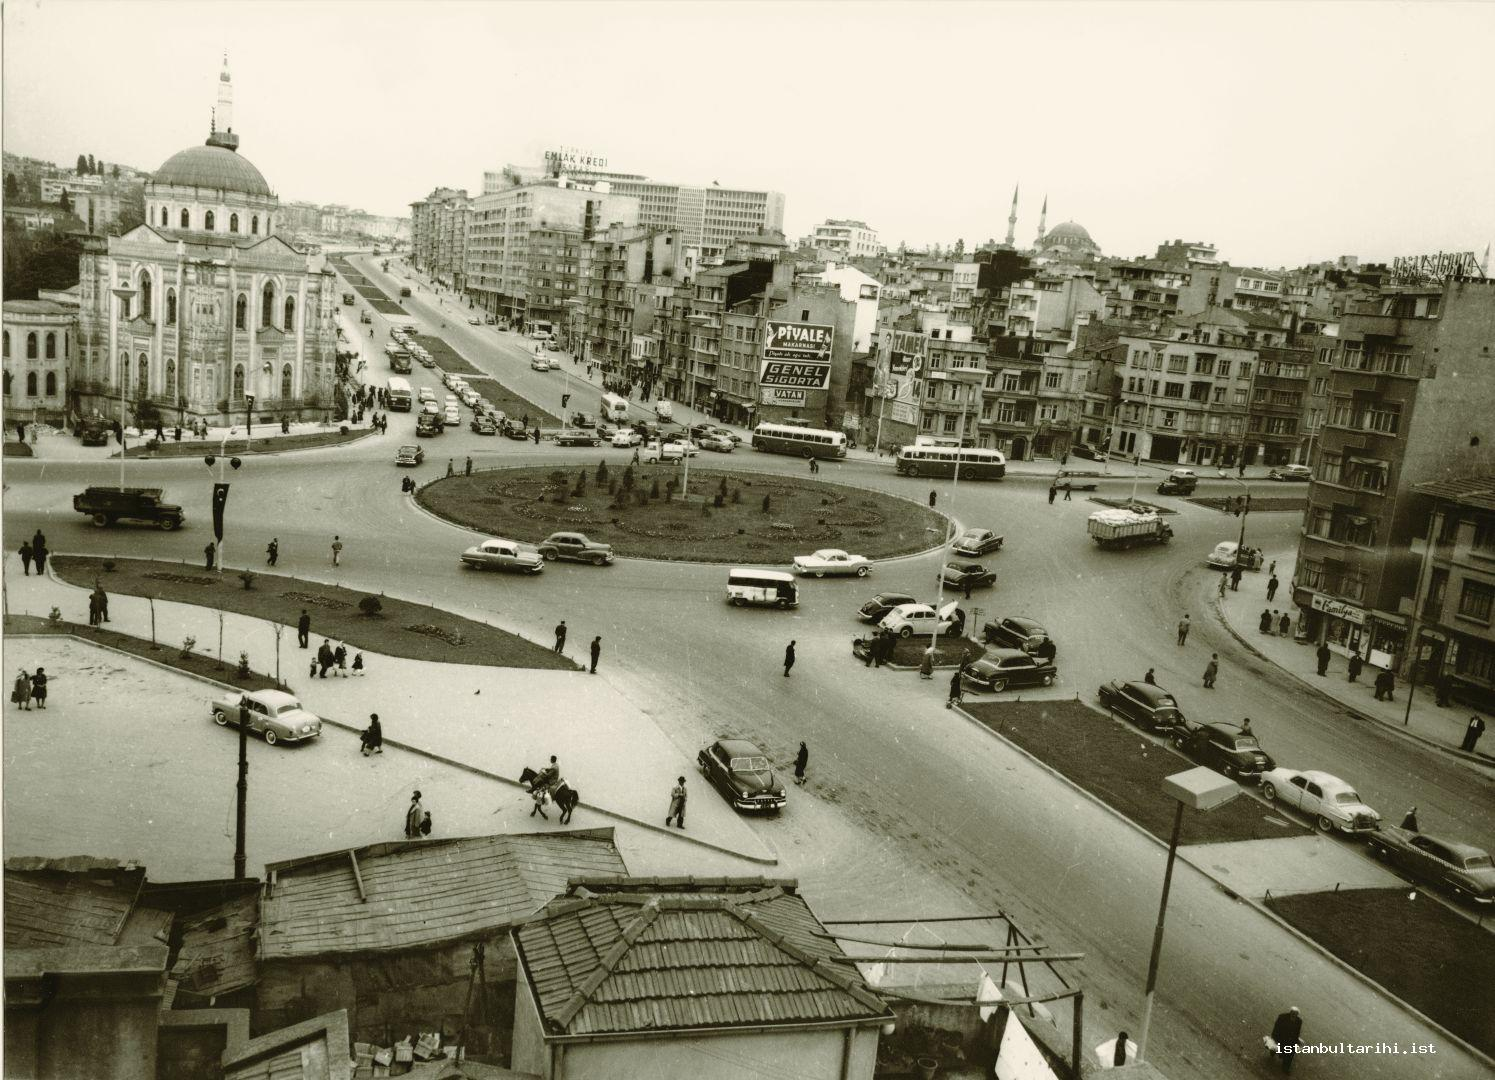 11- From Aksaray to Saraçhane… This was before Aksaray Square was turned into a functionless place by building the current over-pass.